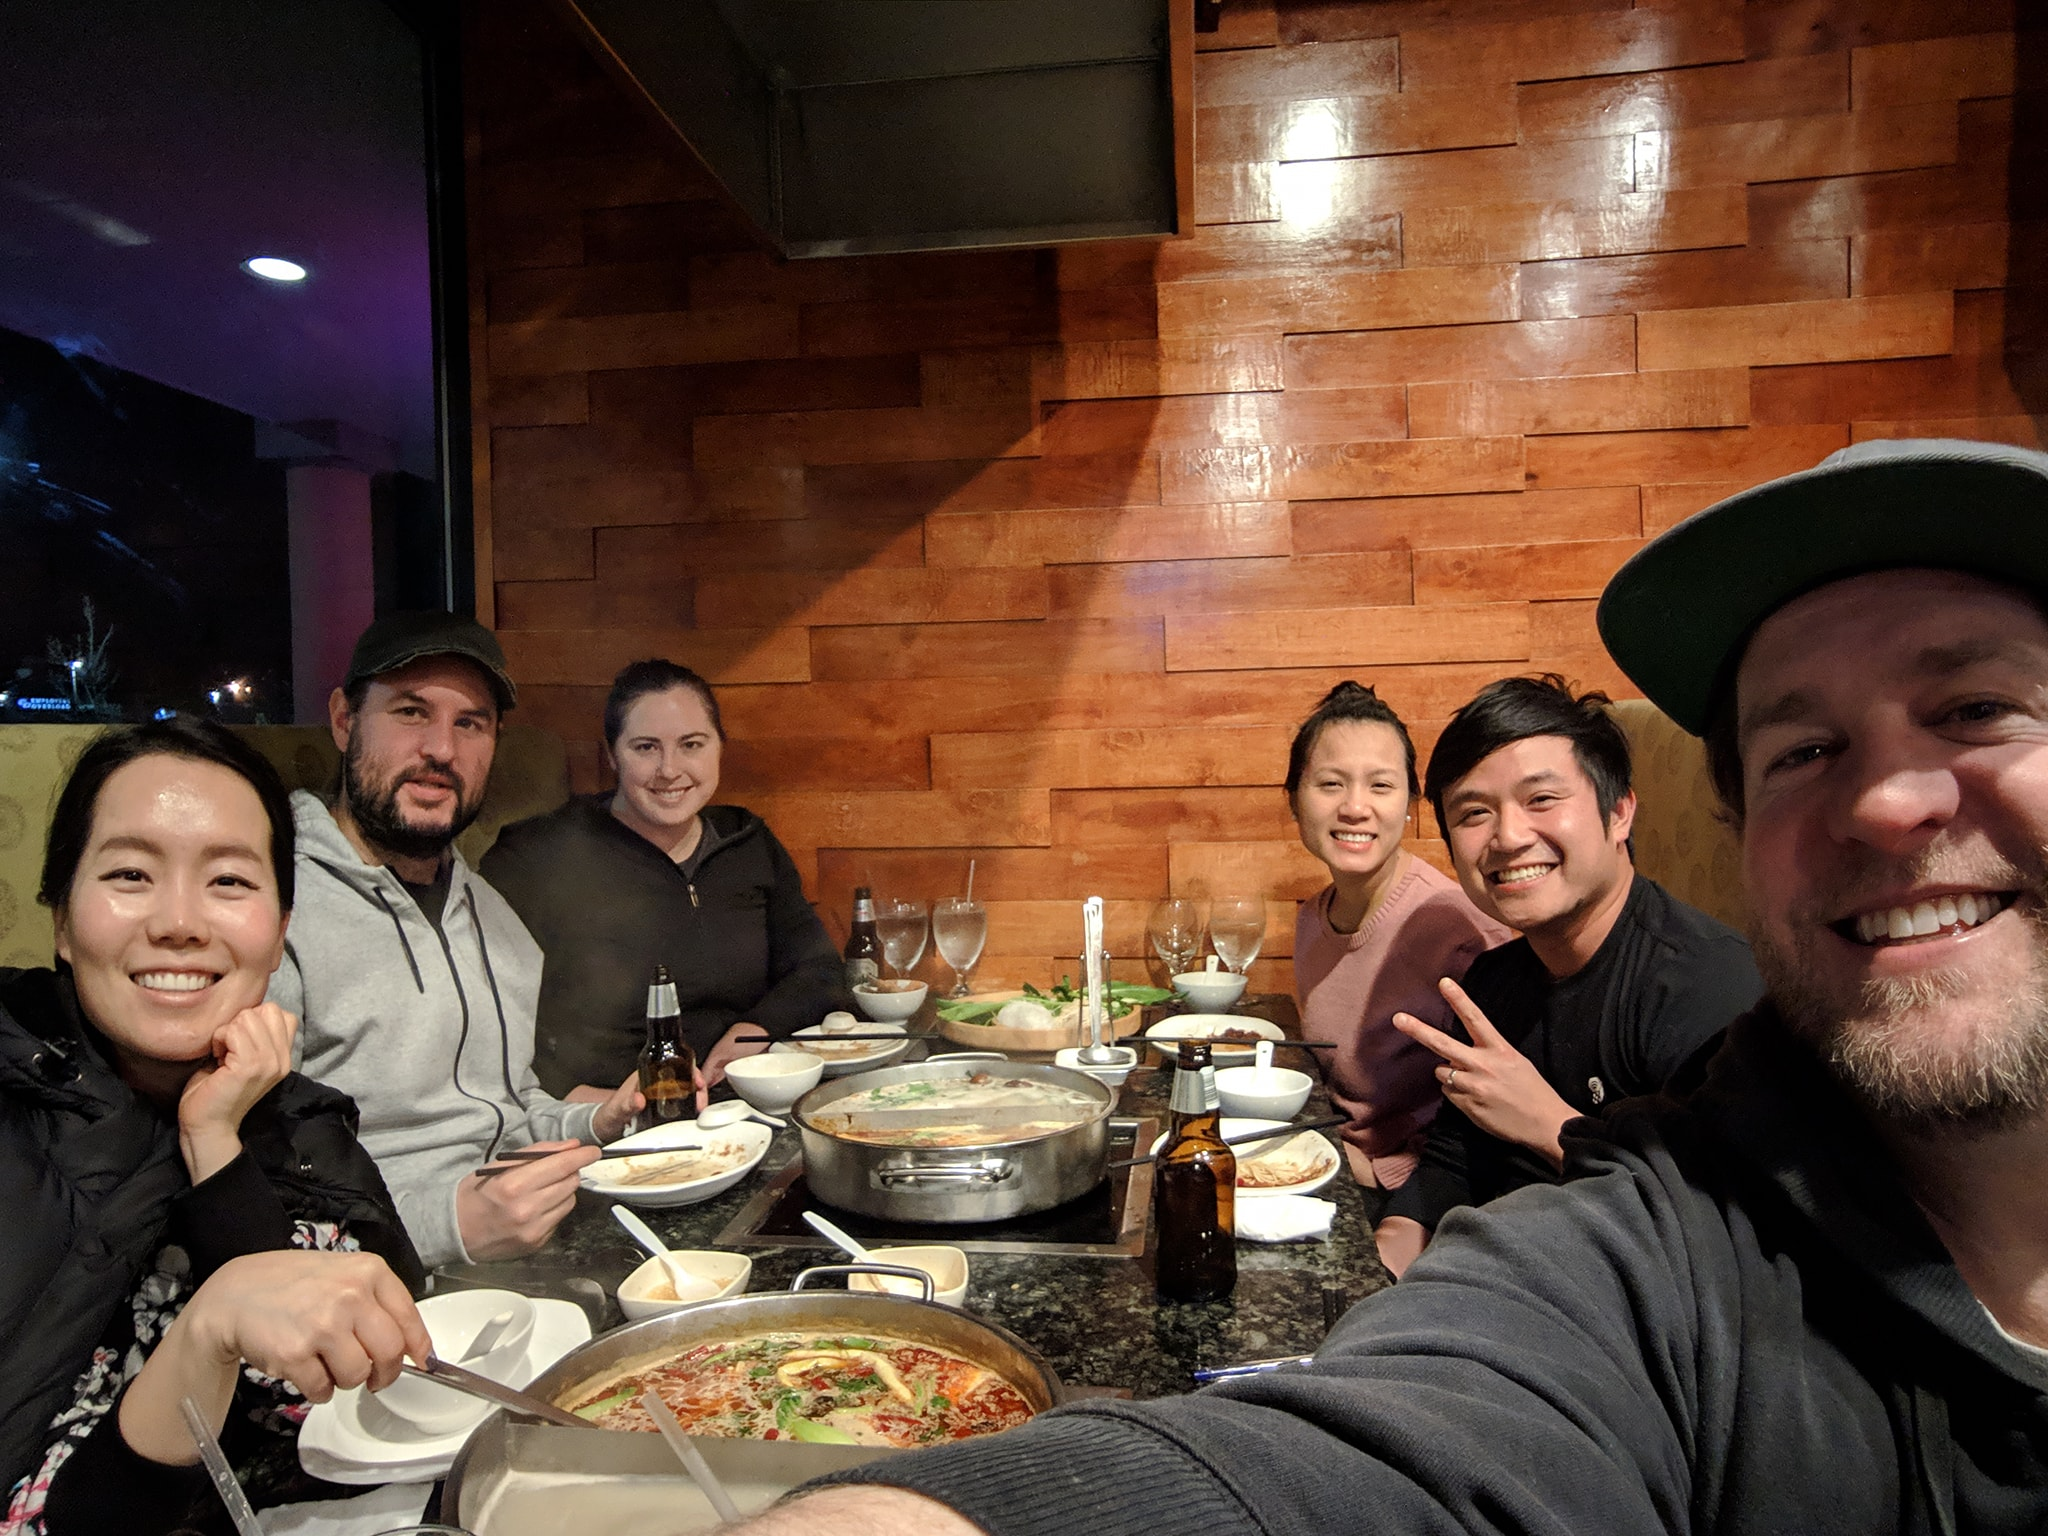 Lucas, Tuan, Nick and their partners sharing a meal at a Chinese Hot Pot restaurant.